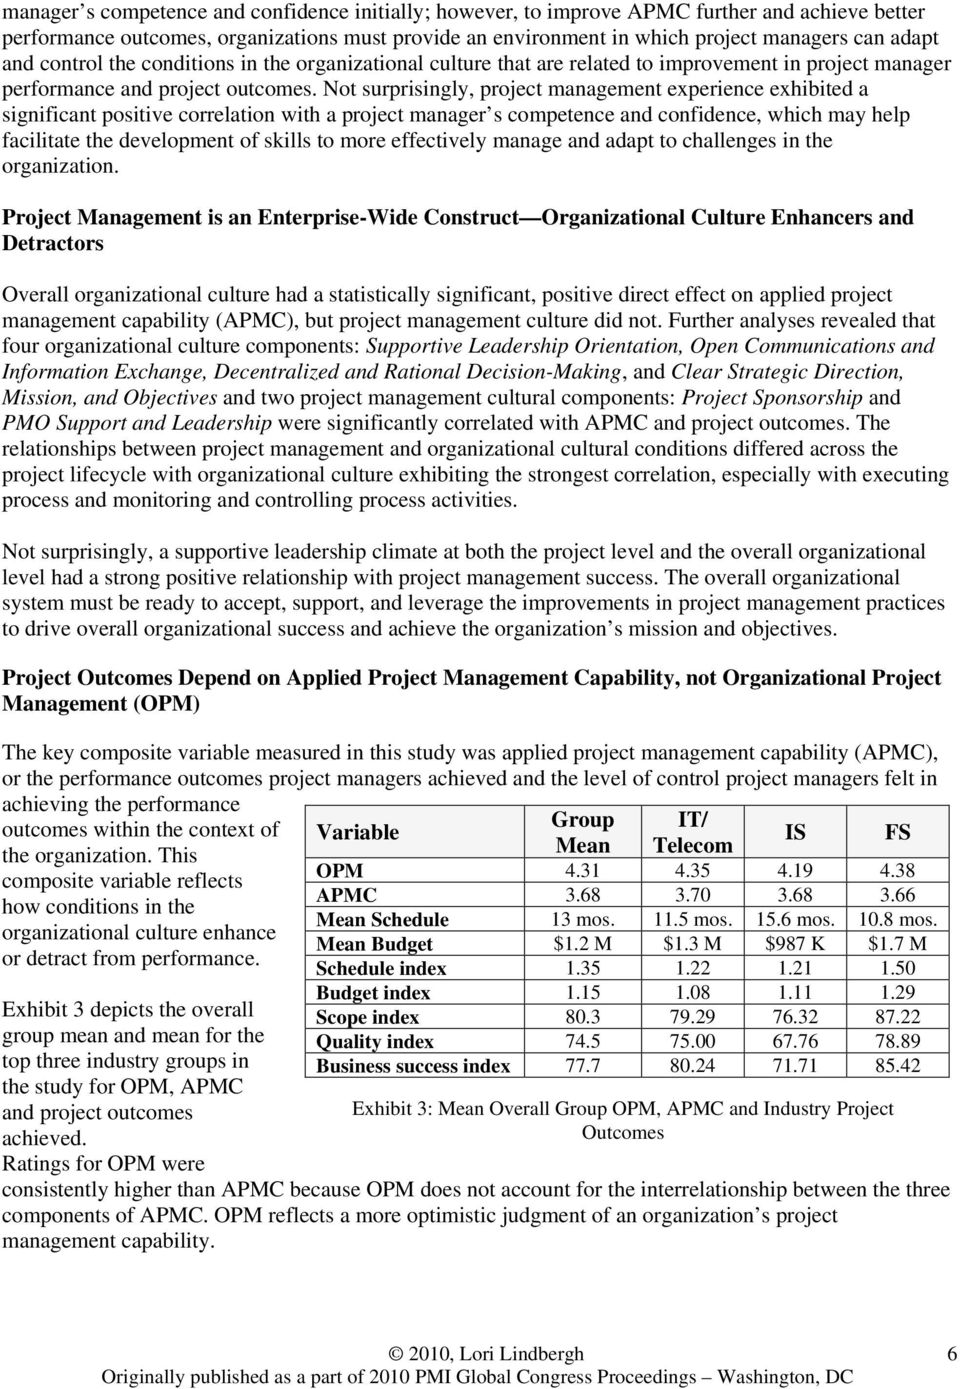 Not surprisingly, project management experience exhibited a significant positive correlation with a project manager s competence and confidence, which may help facilitate the development of skills to